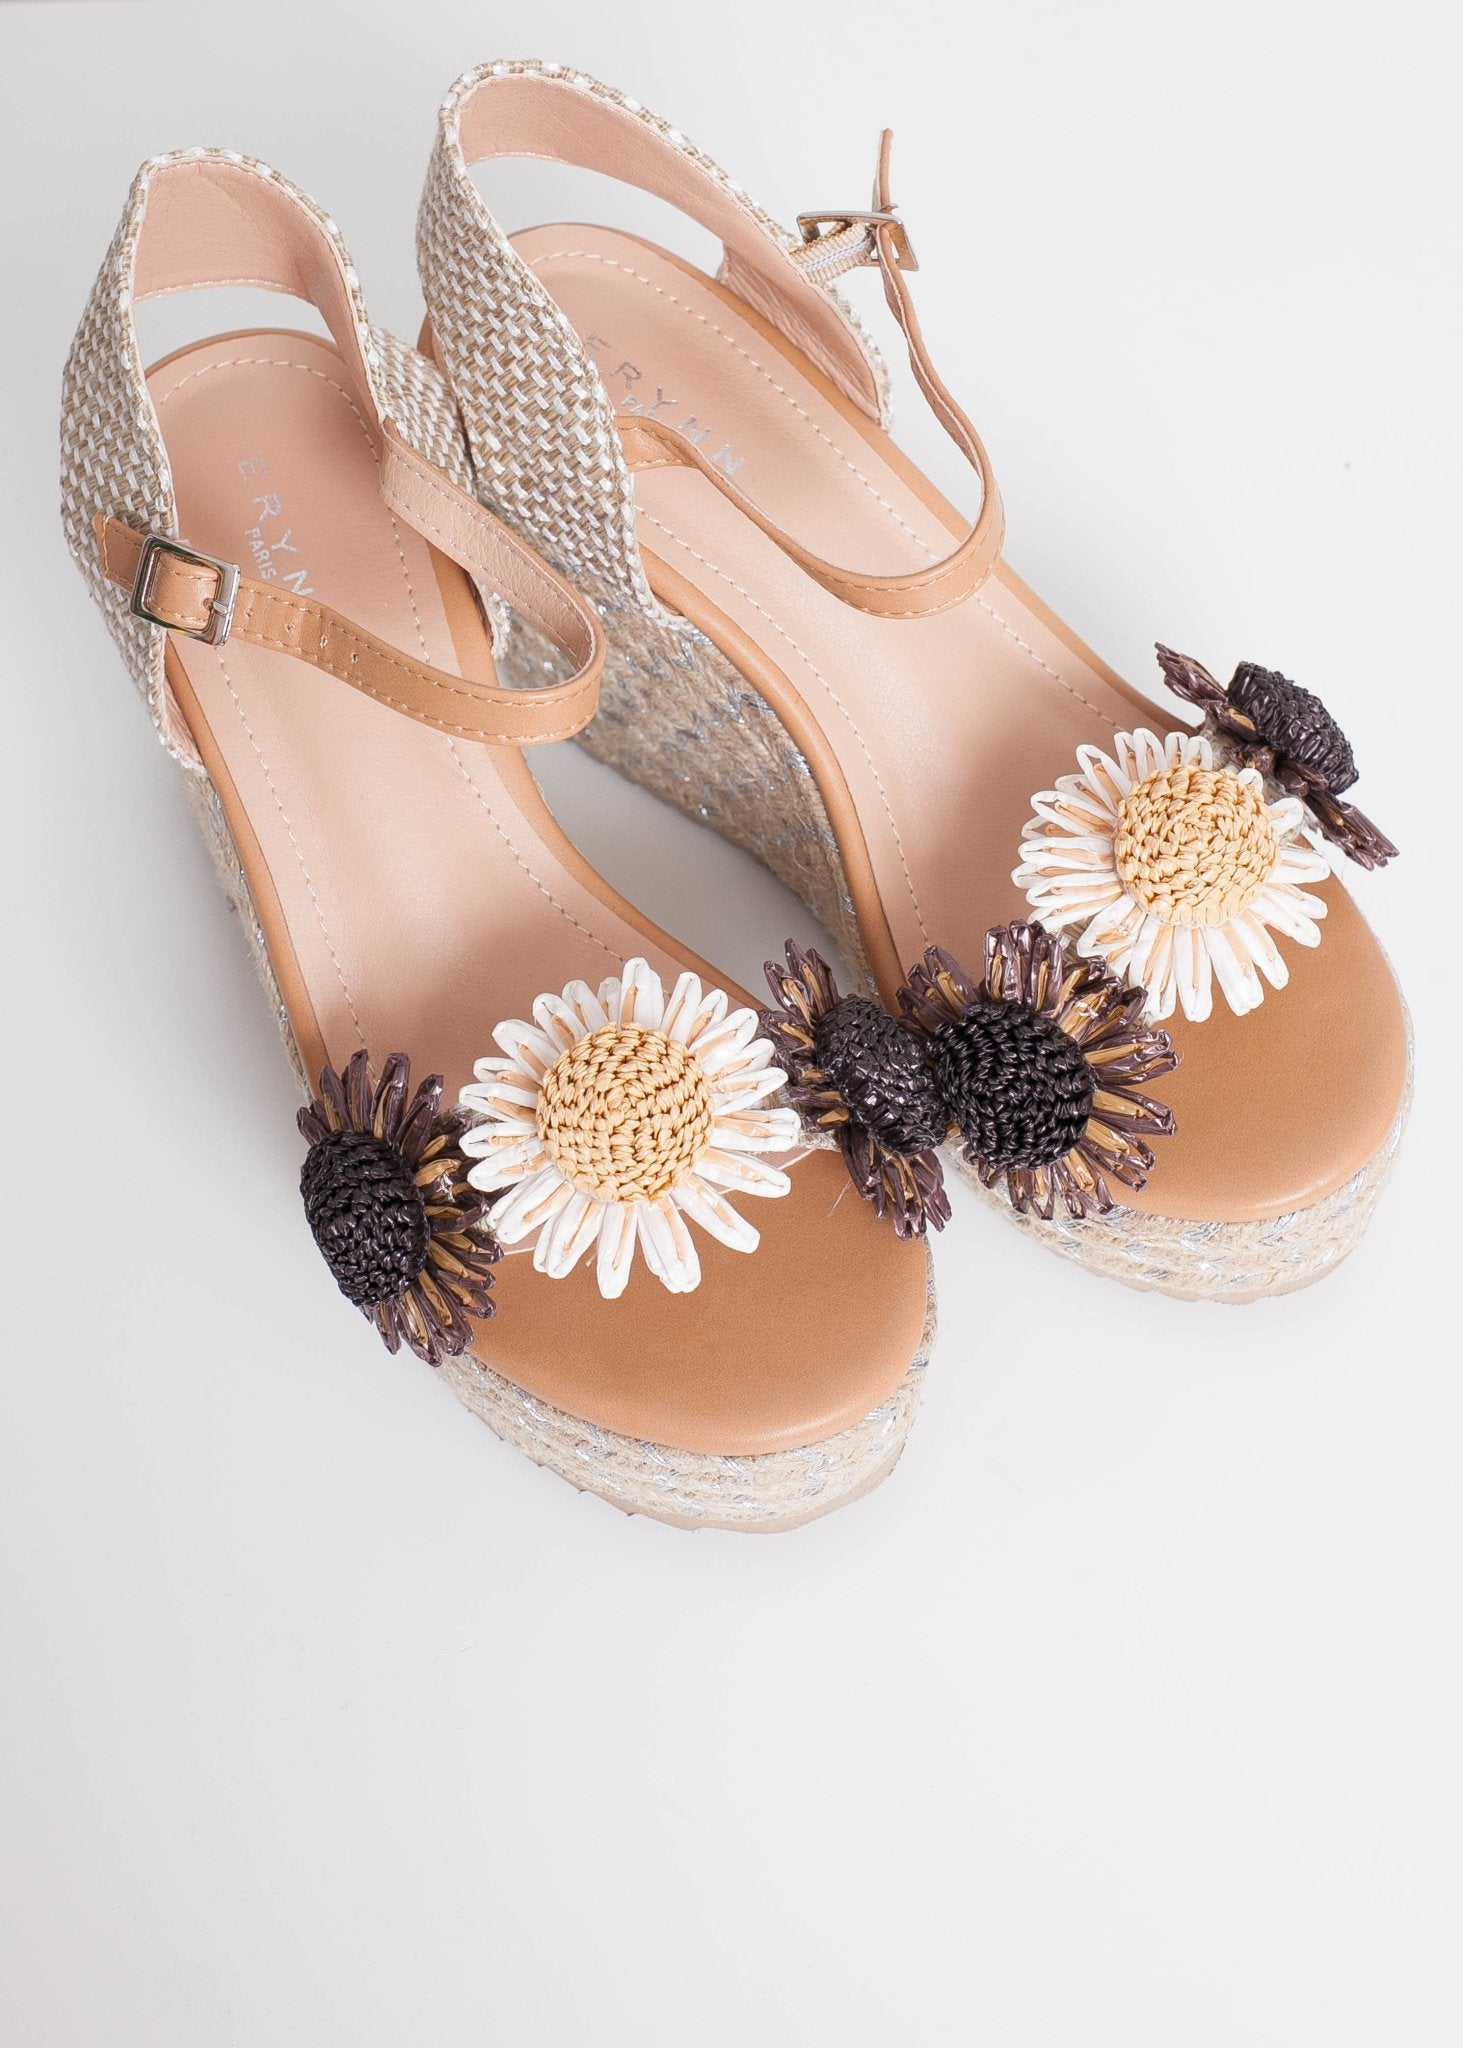 FiFi Flower Wedges - The Walk in Wardrobe